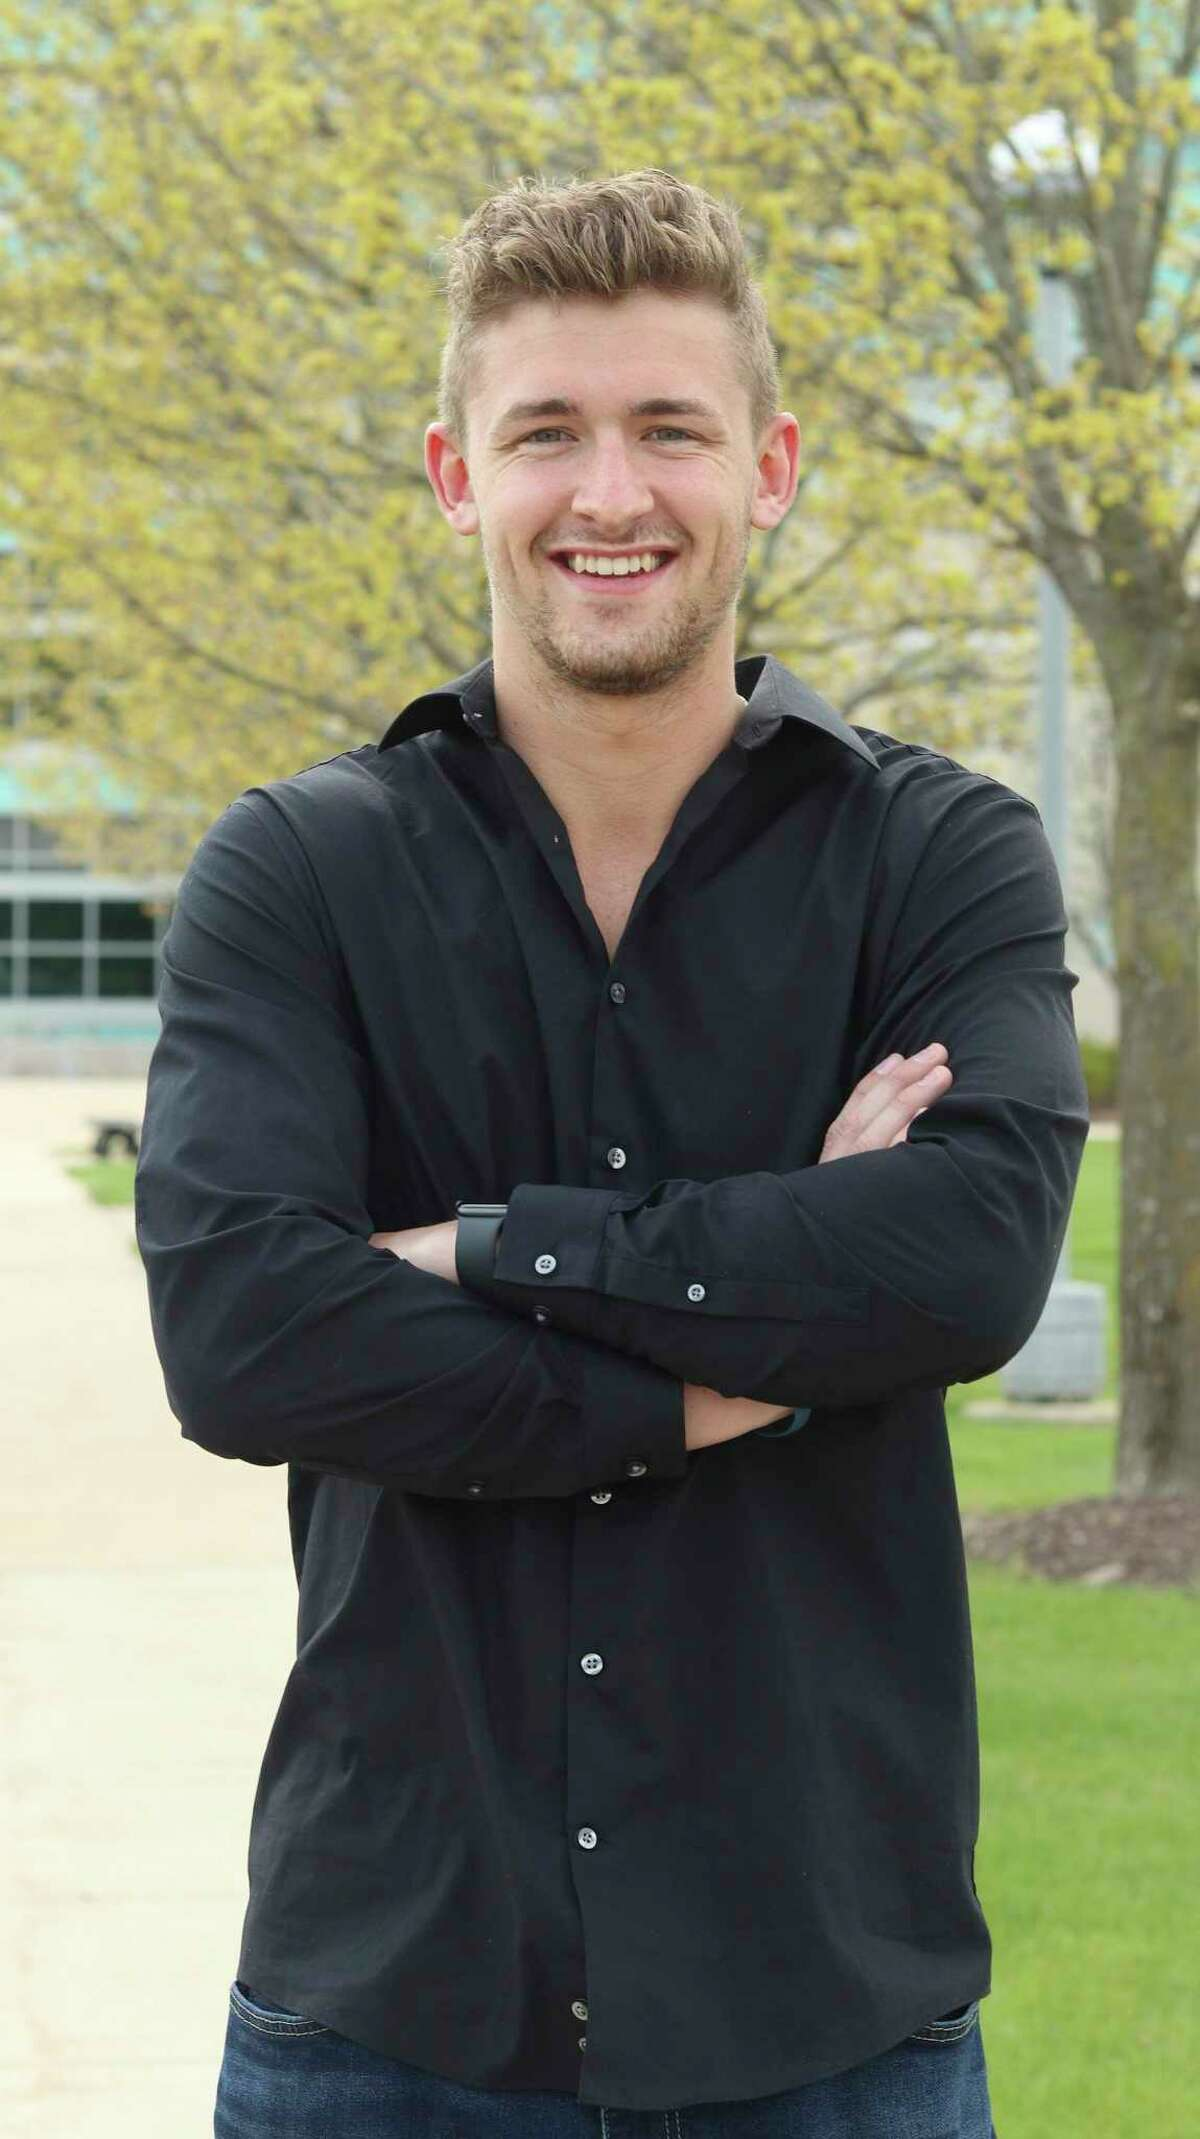 Tyler Dard, of Stanwood, graduated May 1 with a bachelor's inbusiness management from Ferris State University. (Courtesy photo)